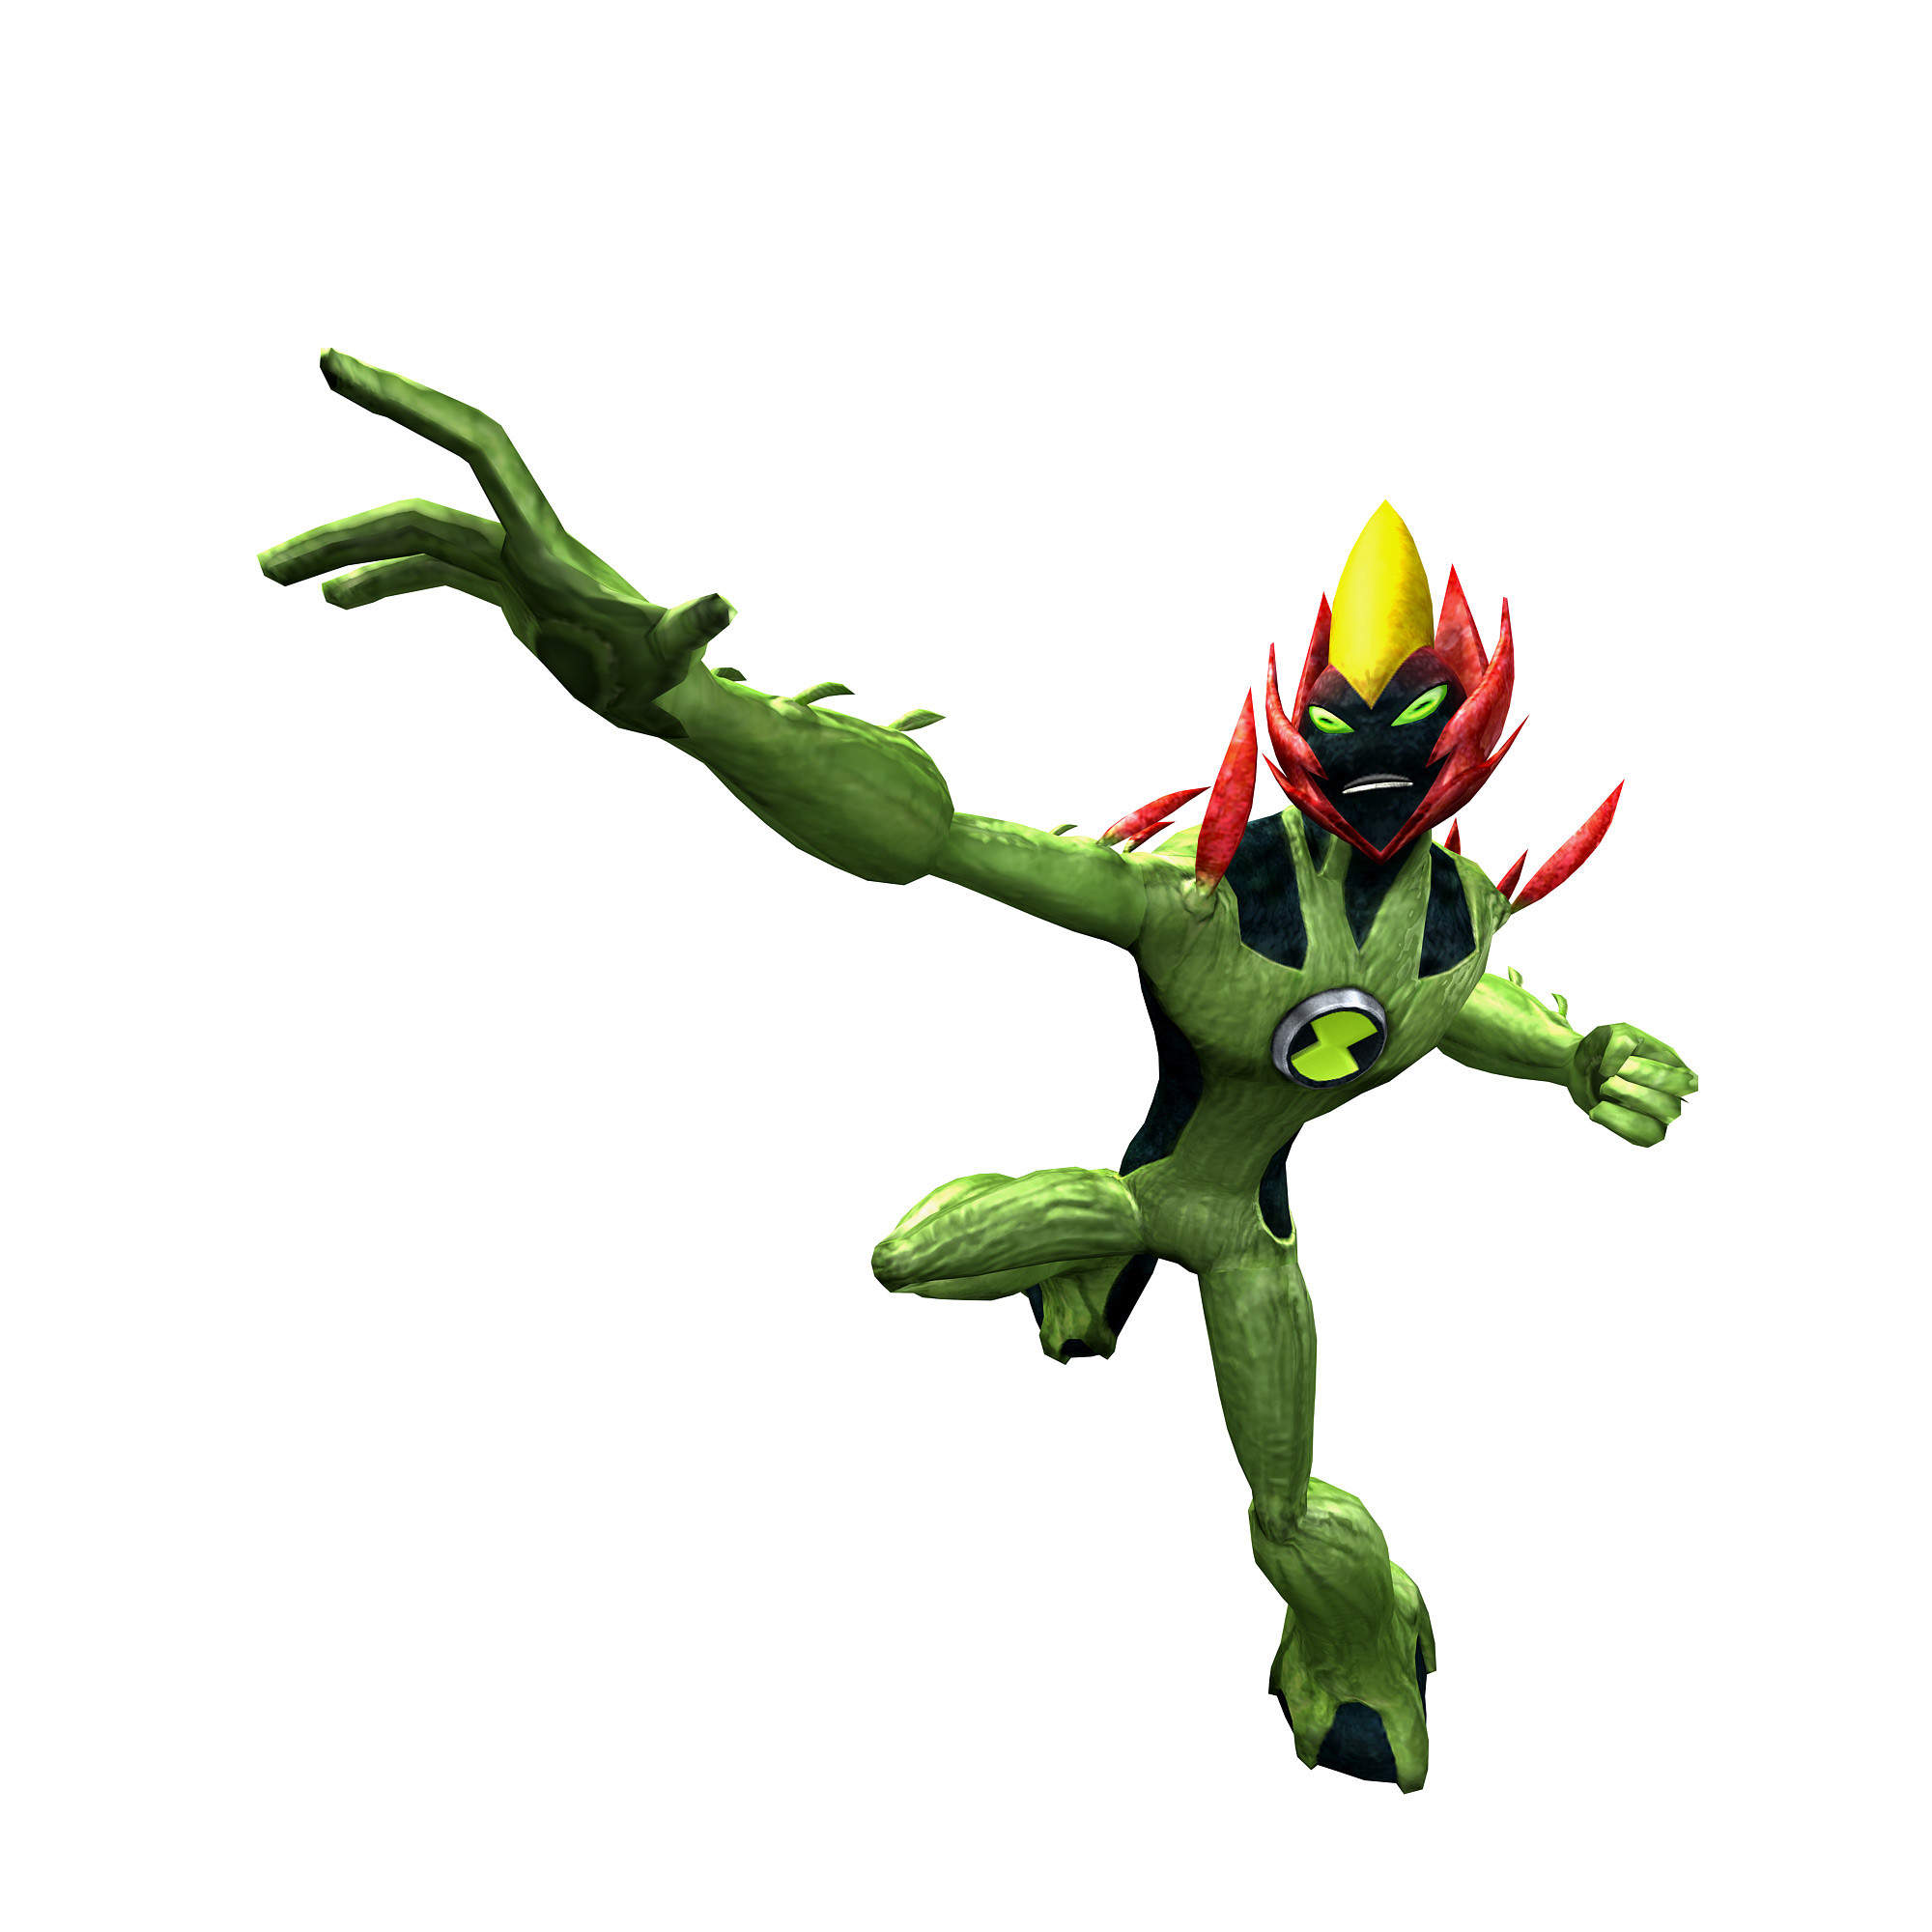 Swampfire - Ben 10 Planet, the Ultimate Ben 10 Resource!